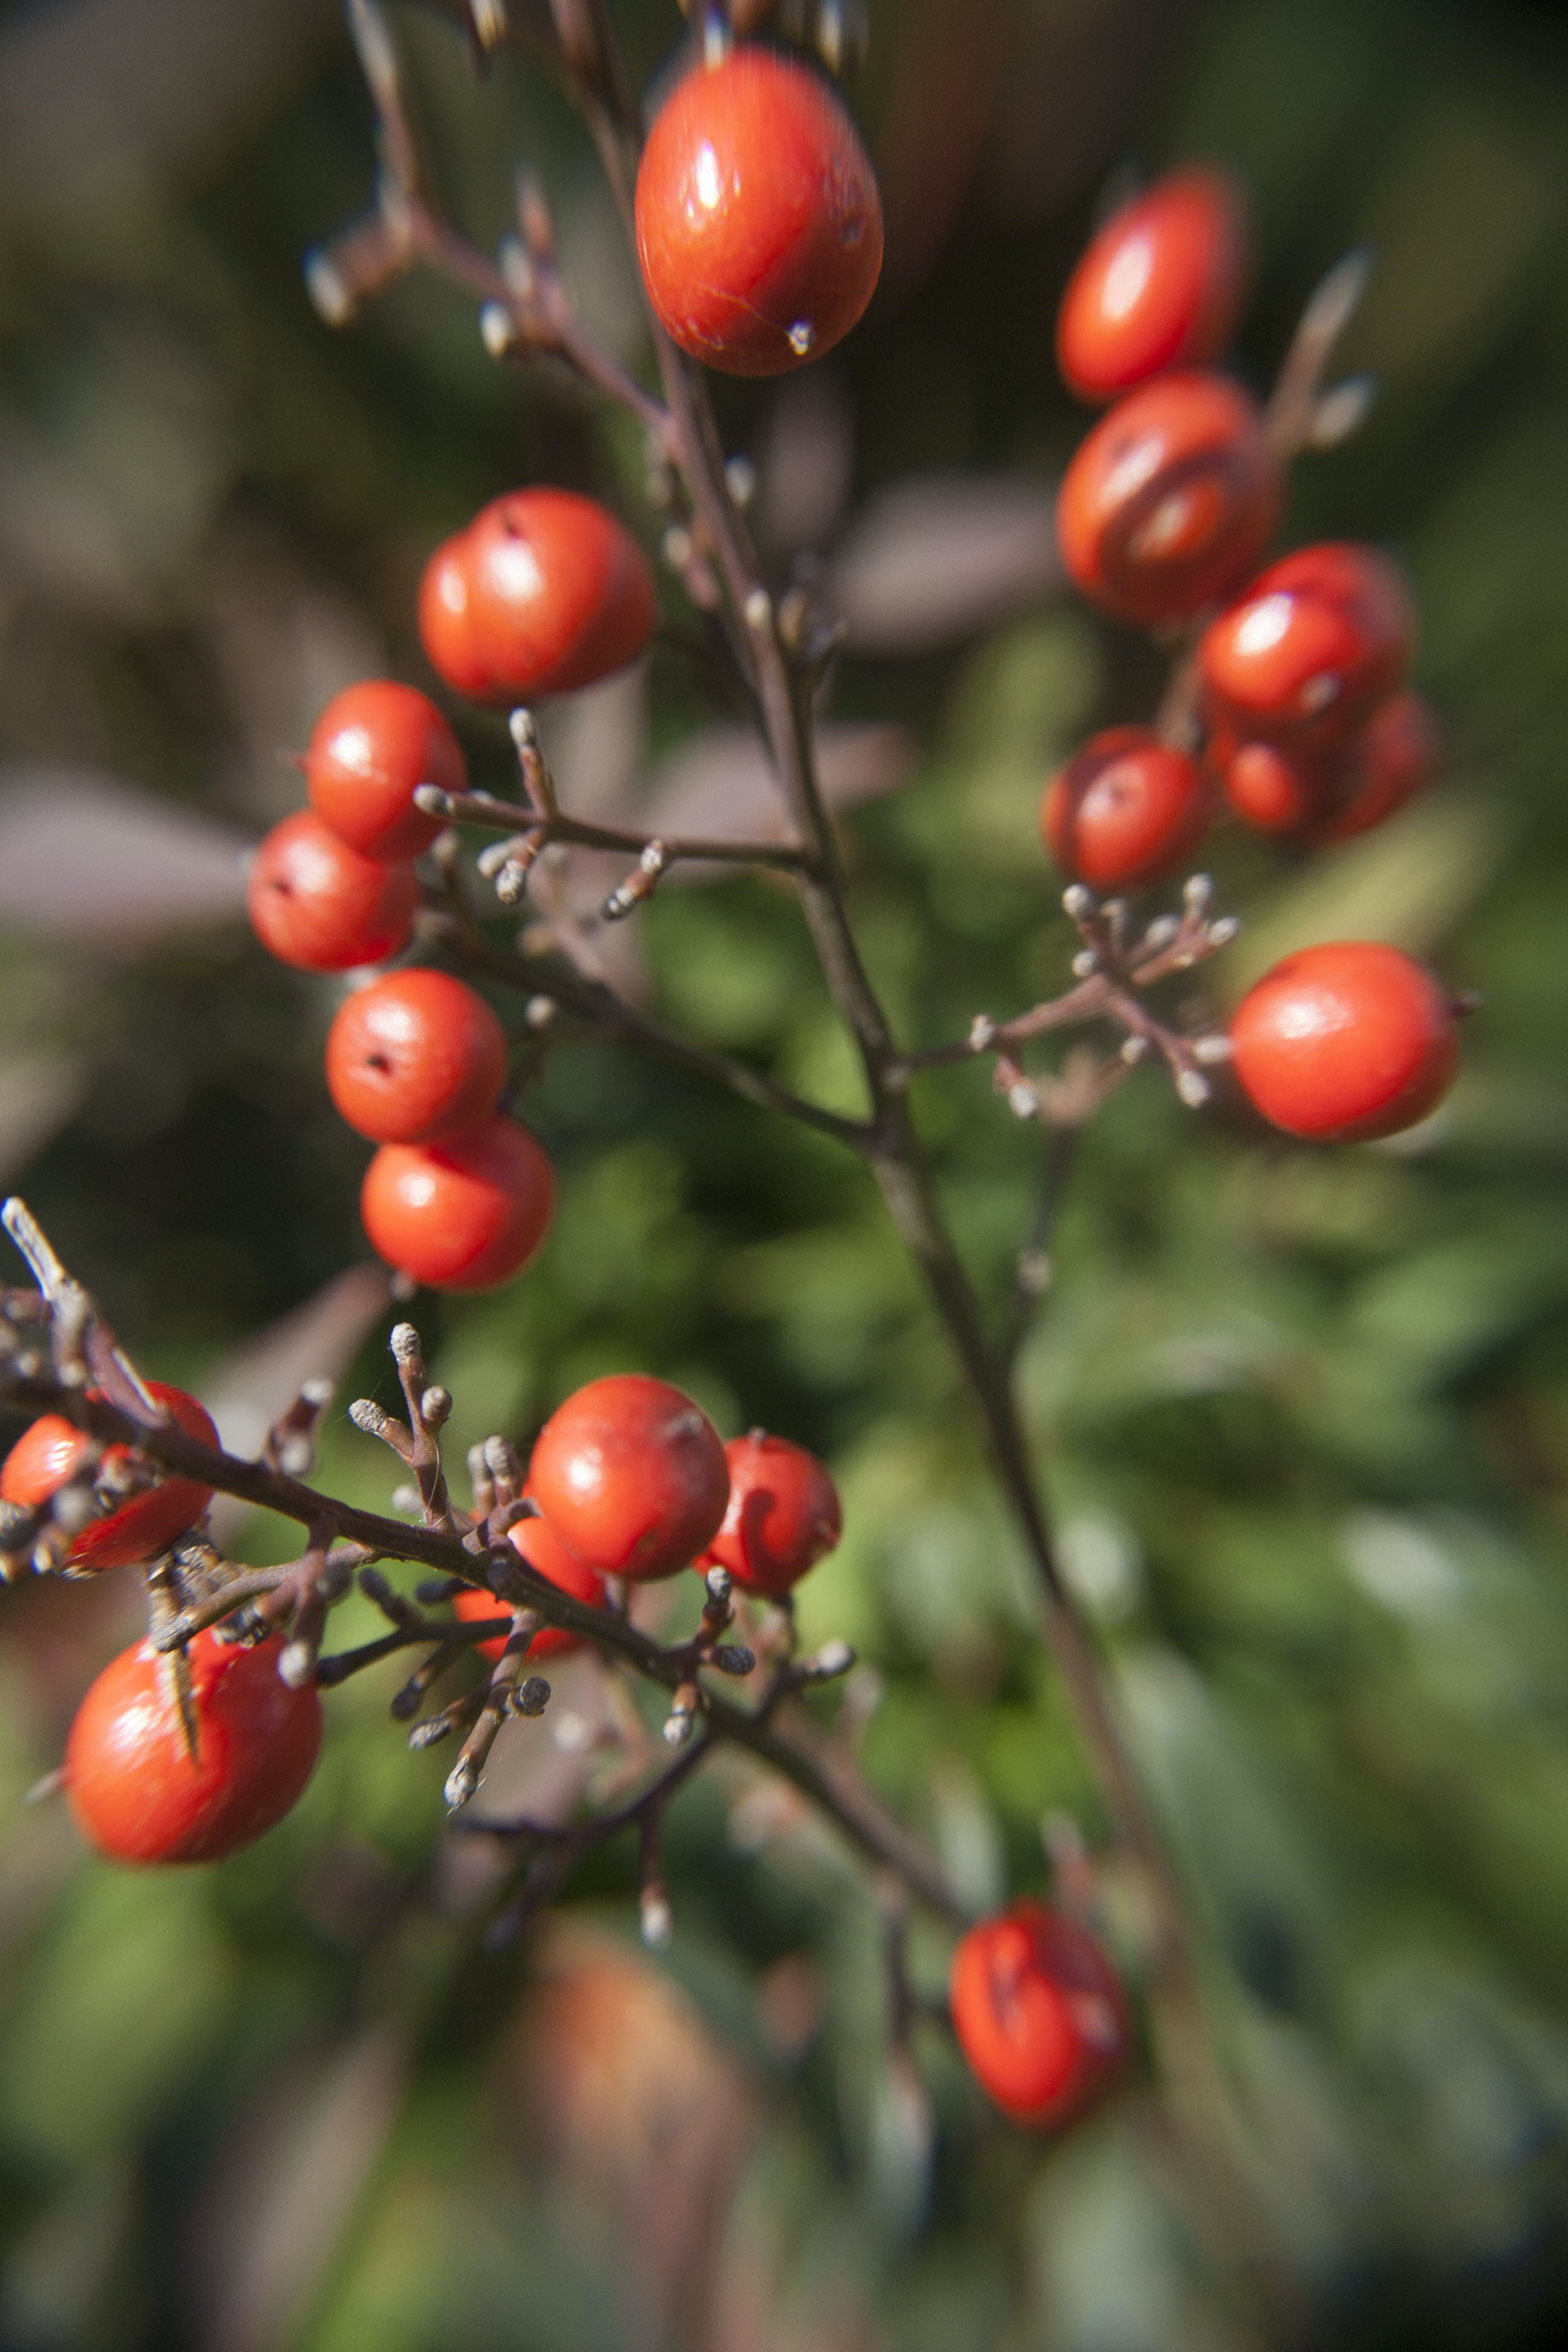 Free stock photo of red, plant, berries, Berries on a plant